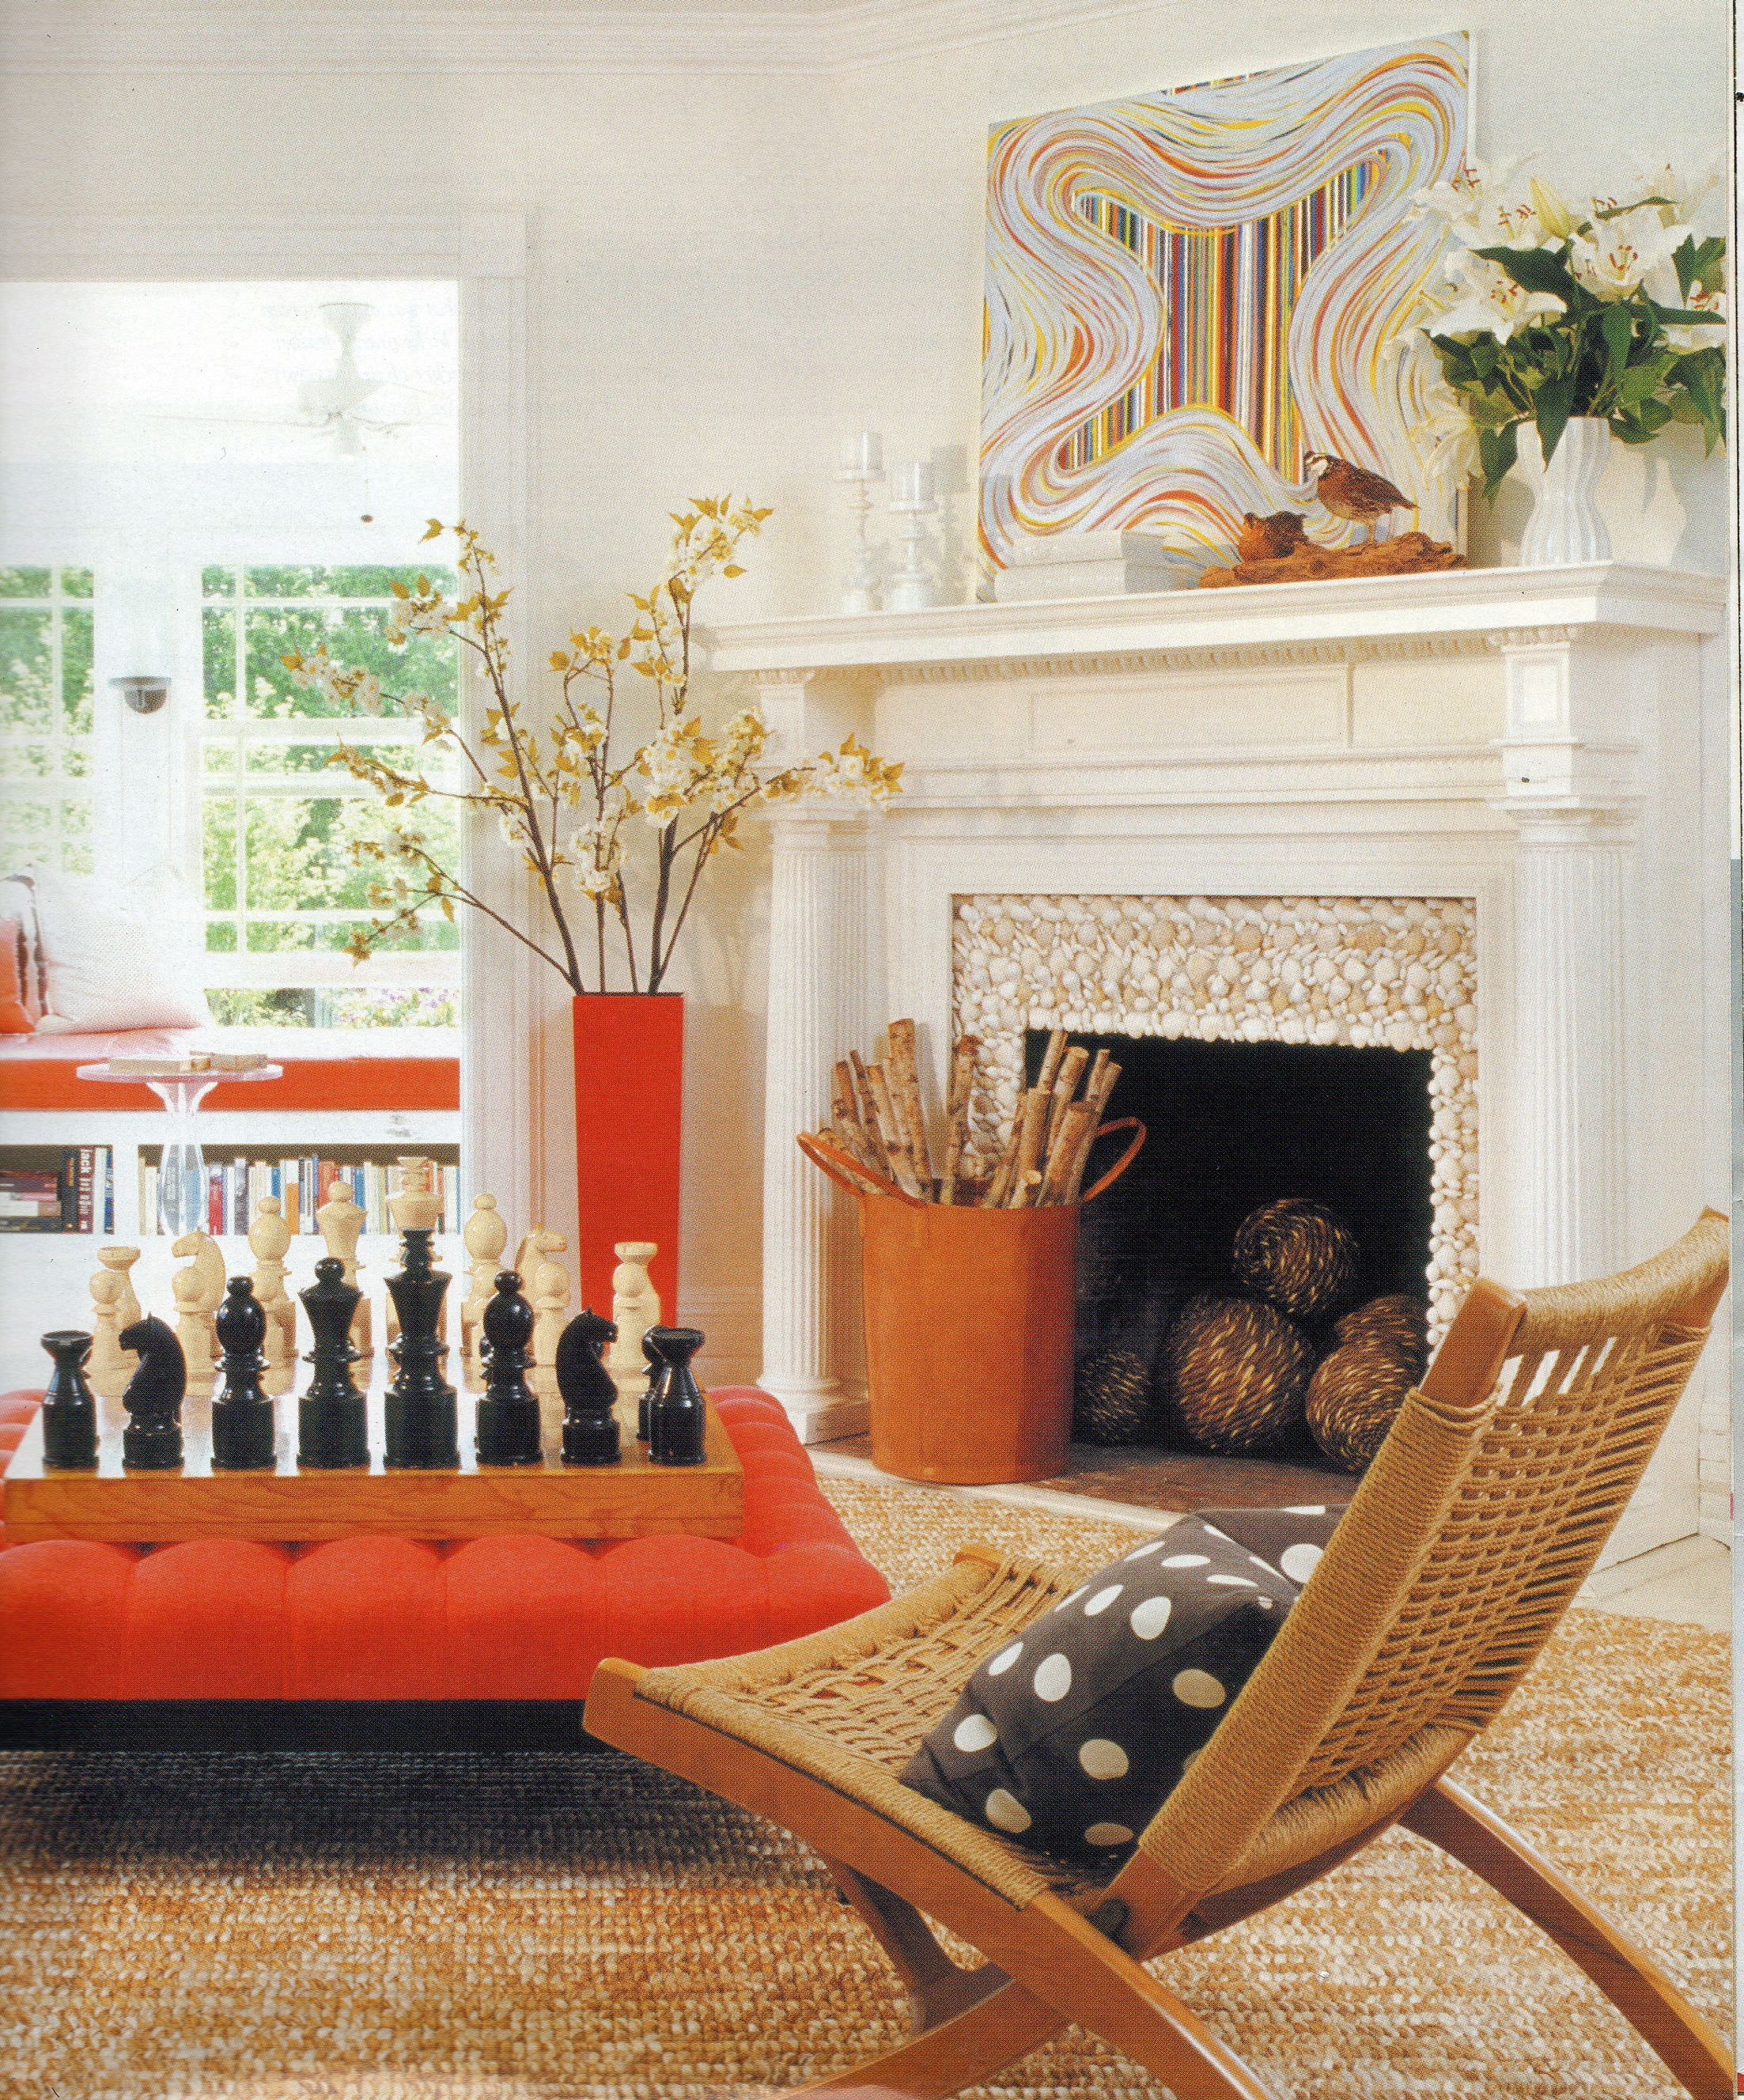 The delicate color selection of this living room departs from common living room color schemes by incorporating orange. The center ottoman mounted with a chess board and oversized pieces, the vase, window bench, firewood holder and the artwork are all eye catching.